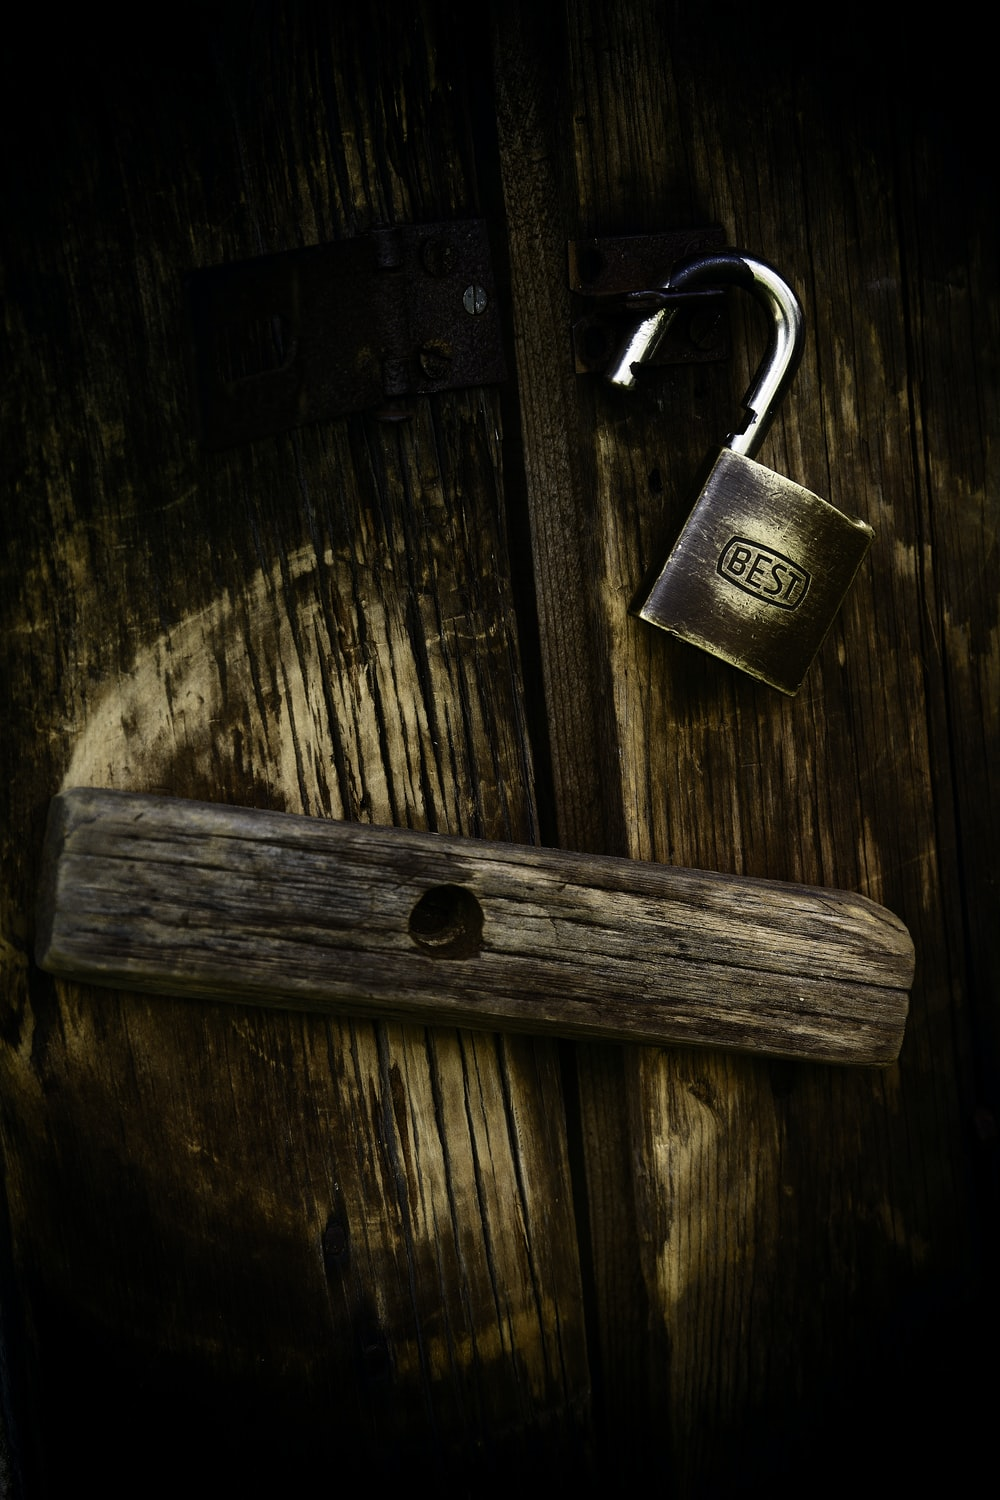 gold padlock on brown wooden surface